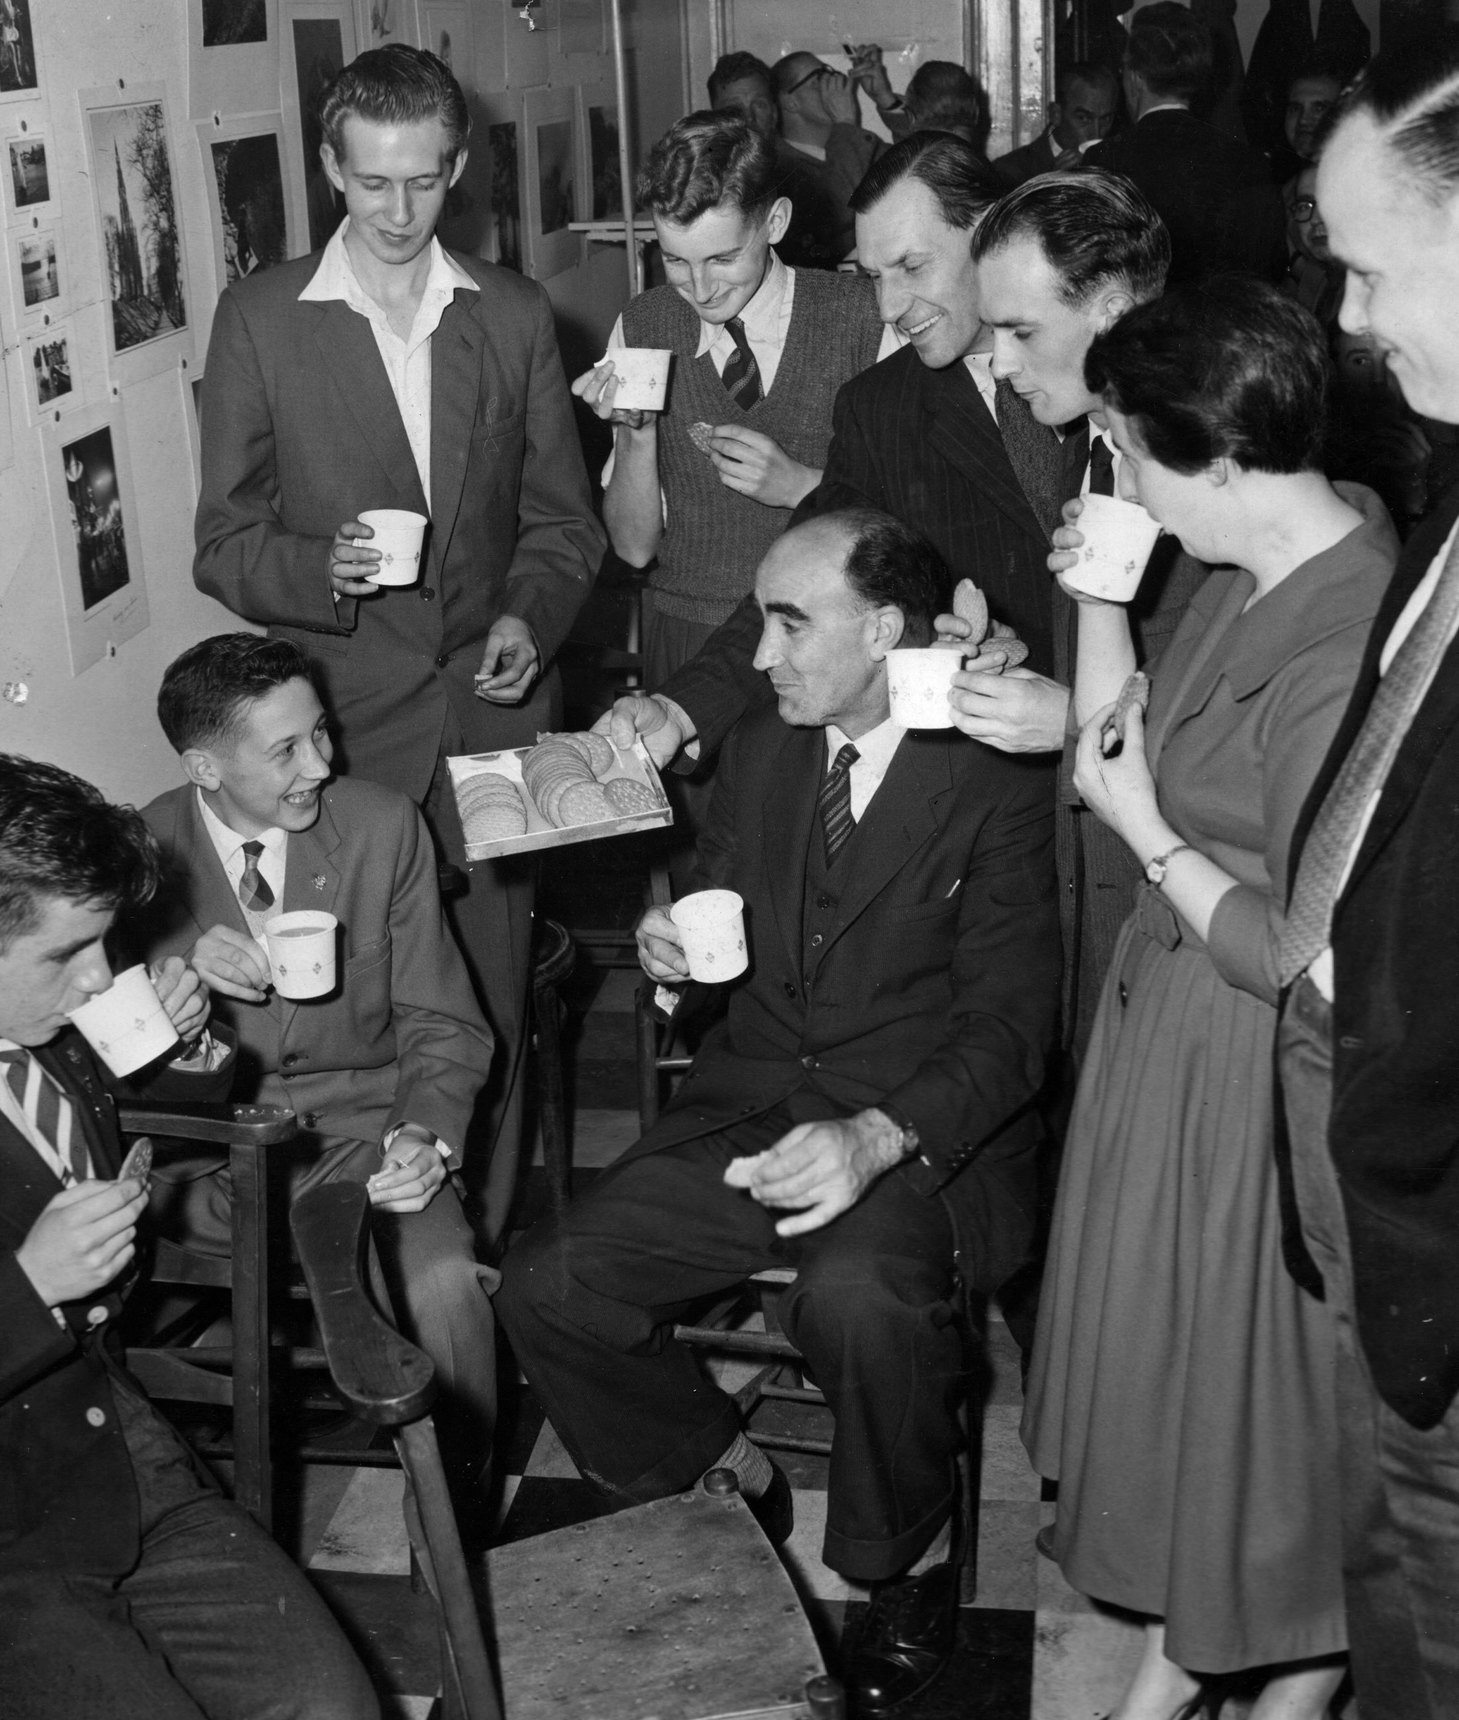 Leith Camera Club Members Enjoying A Cup Of Tea And Biscuit, 6th October, 1959